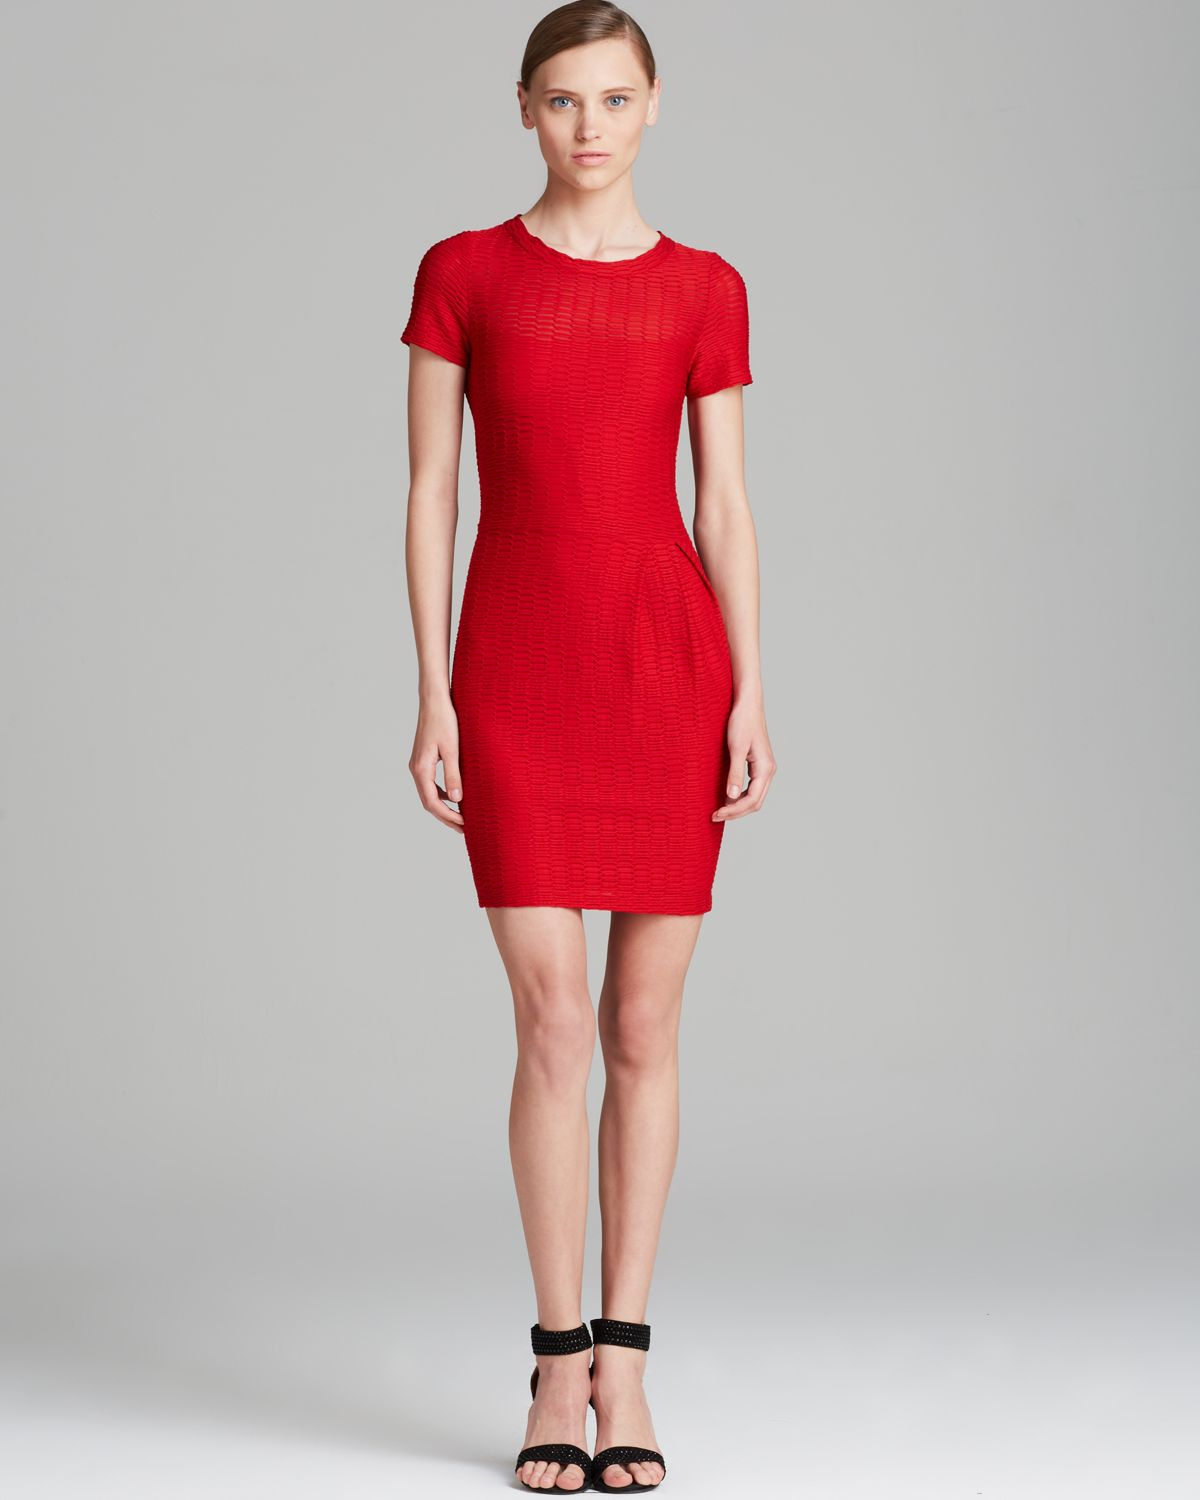 Nanette lepore Dress Cliff Hanger in Red | Lyst